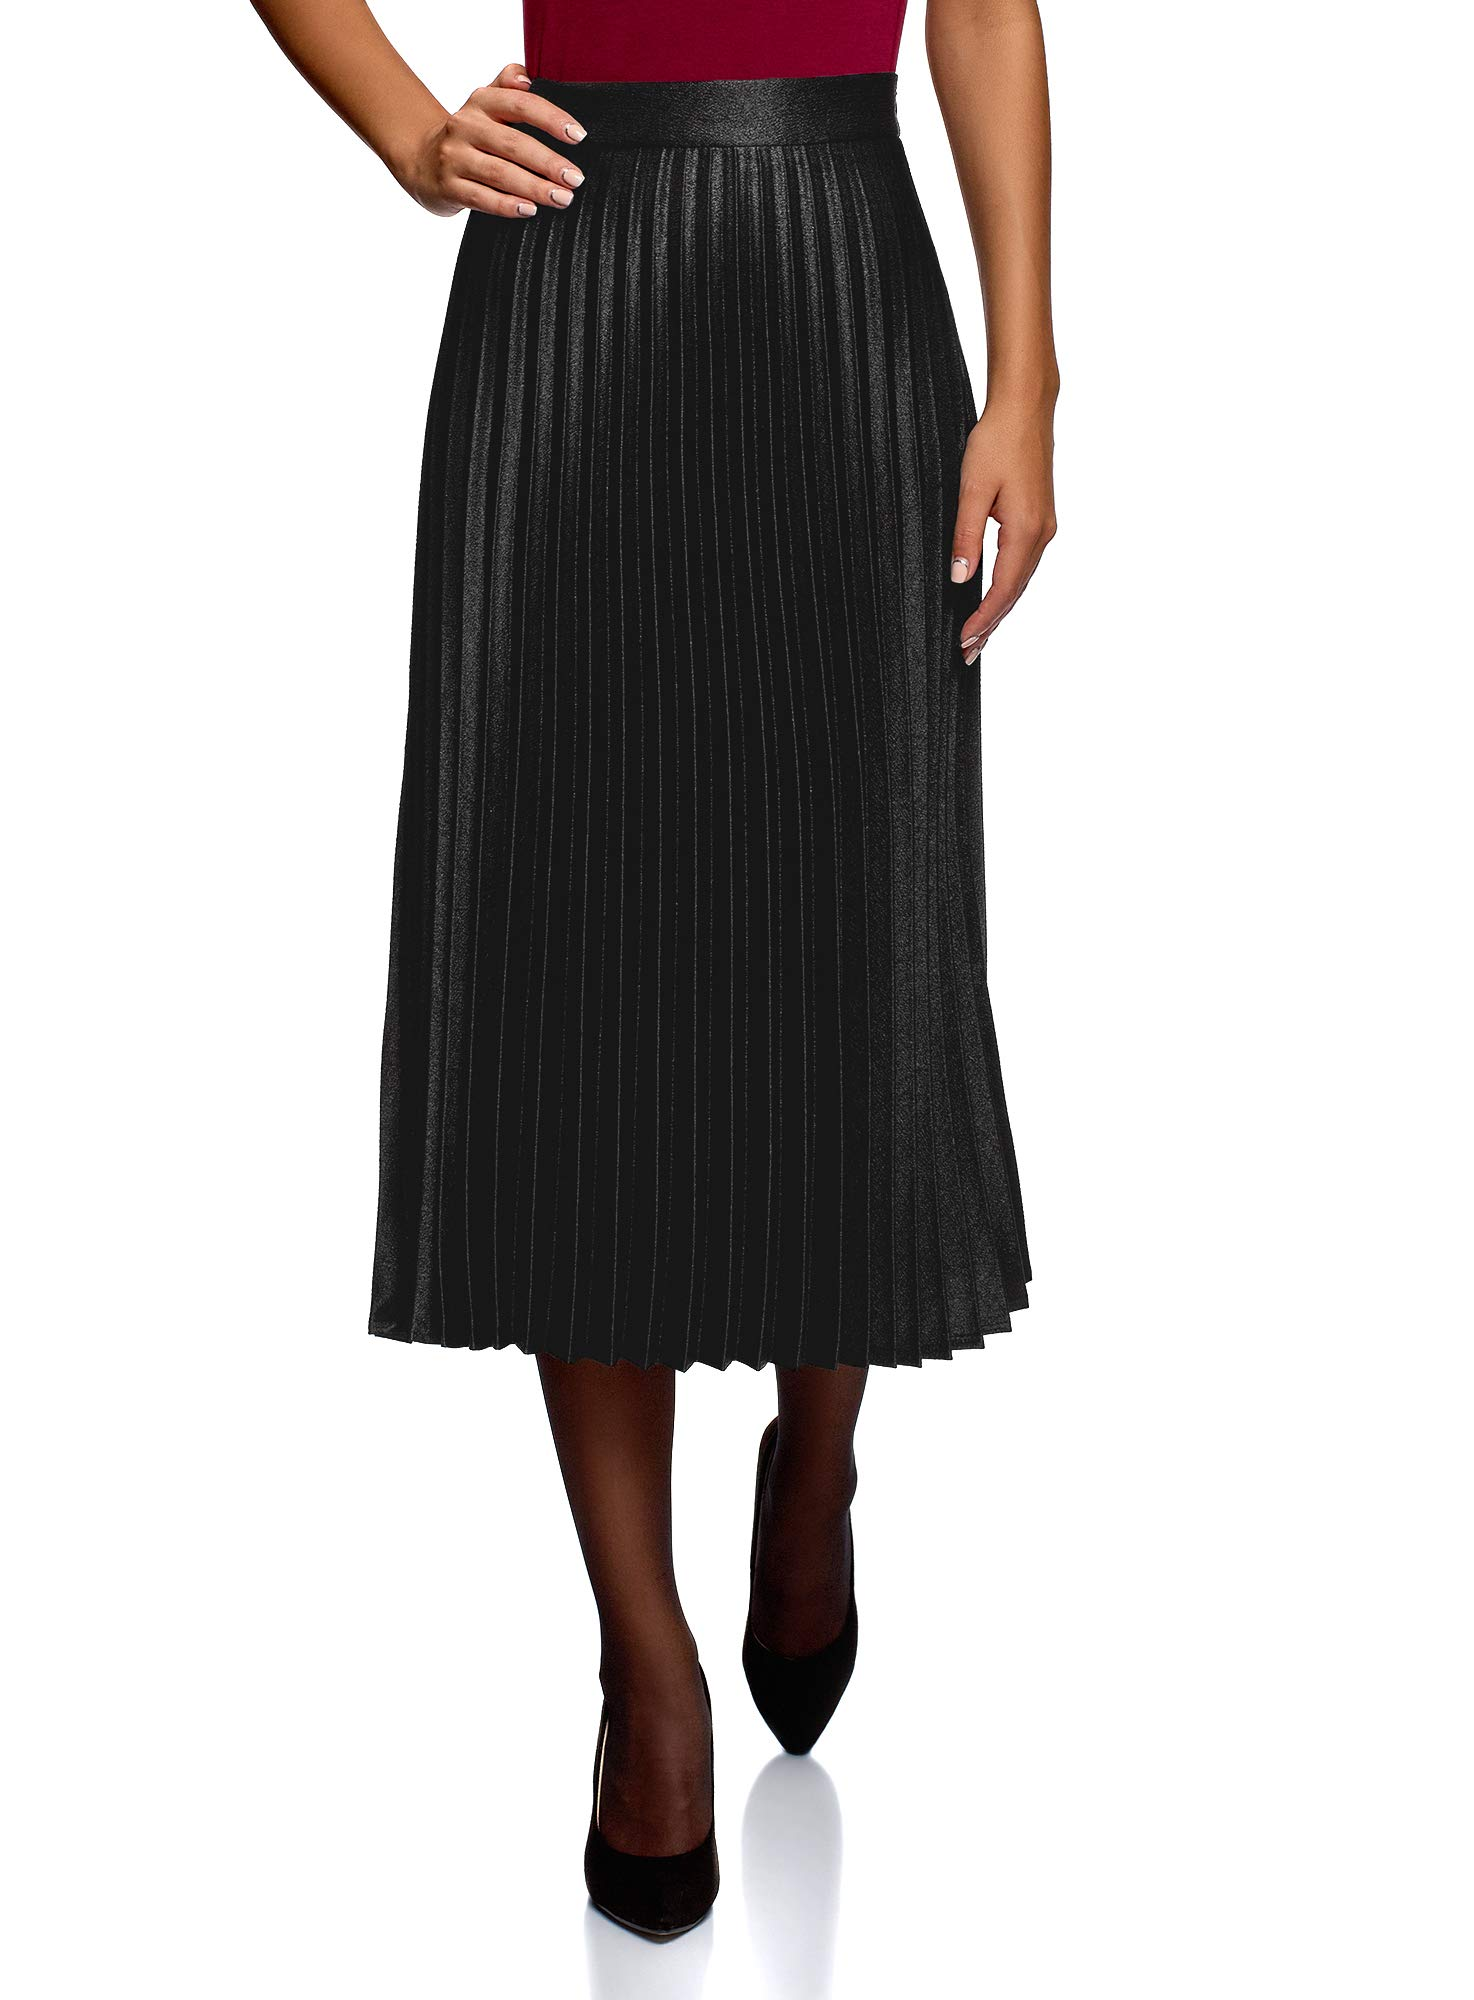 oodji Collection Women's Long Accordion Pleated Skirt, Black, 6 by oodji